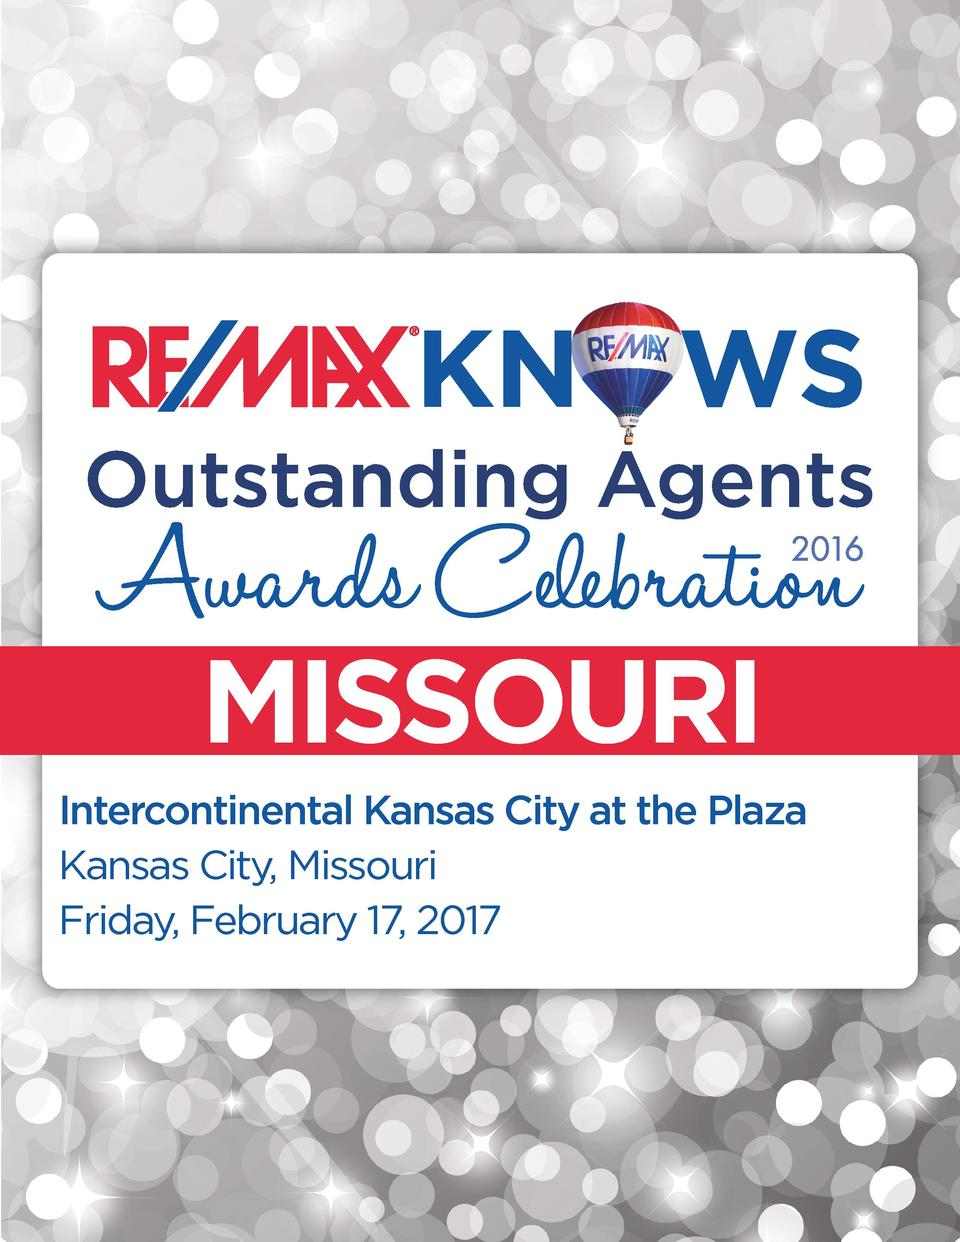 MISSOURI Intercontinental Kansas City at the Plaza Kansas City, Missouri Friday, February 17, 2017